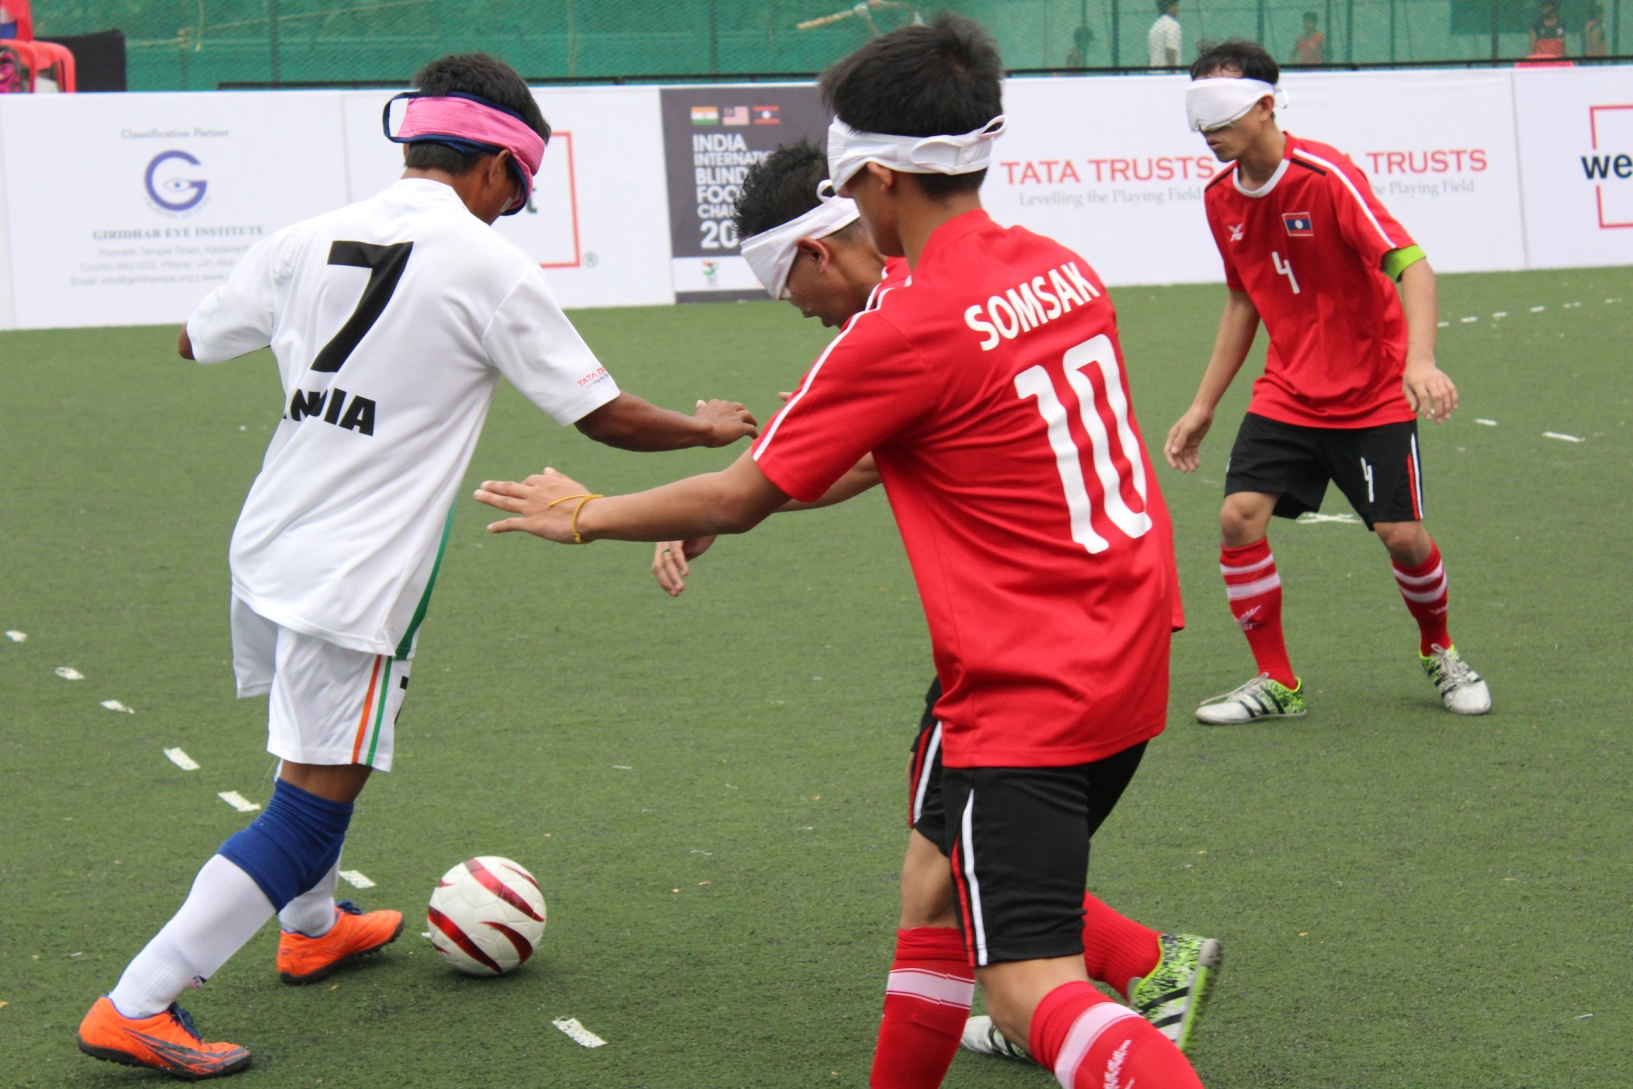 Laos players defending attack from indian player